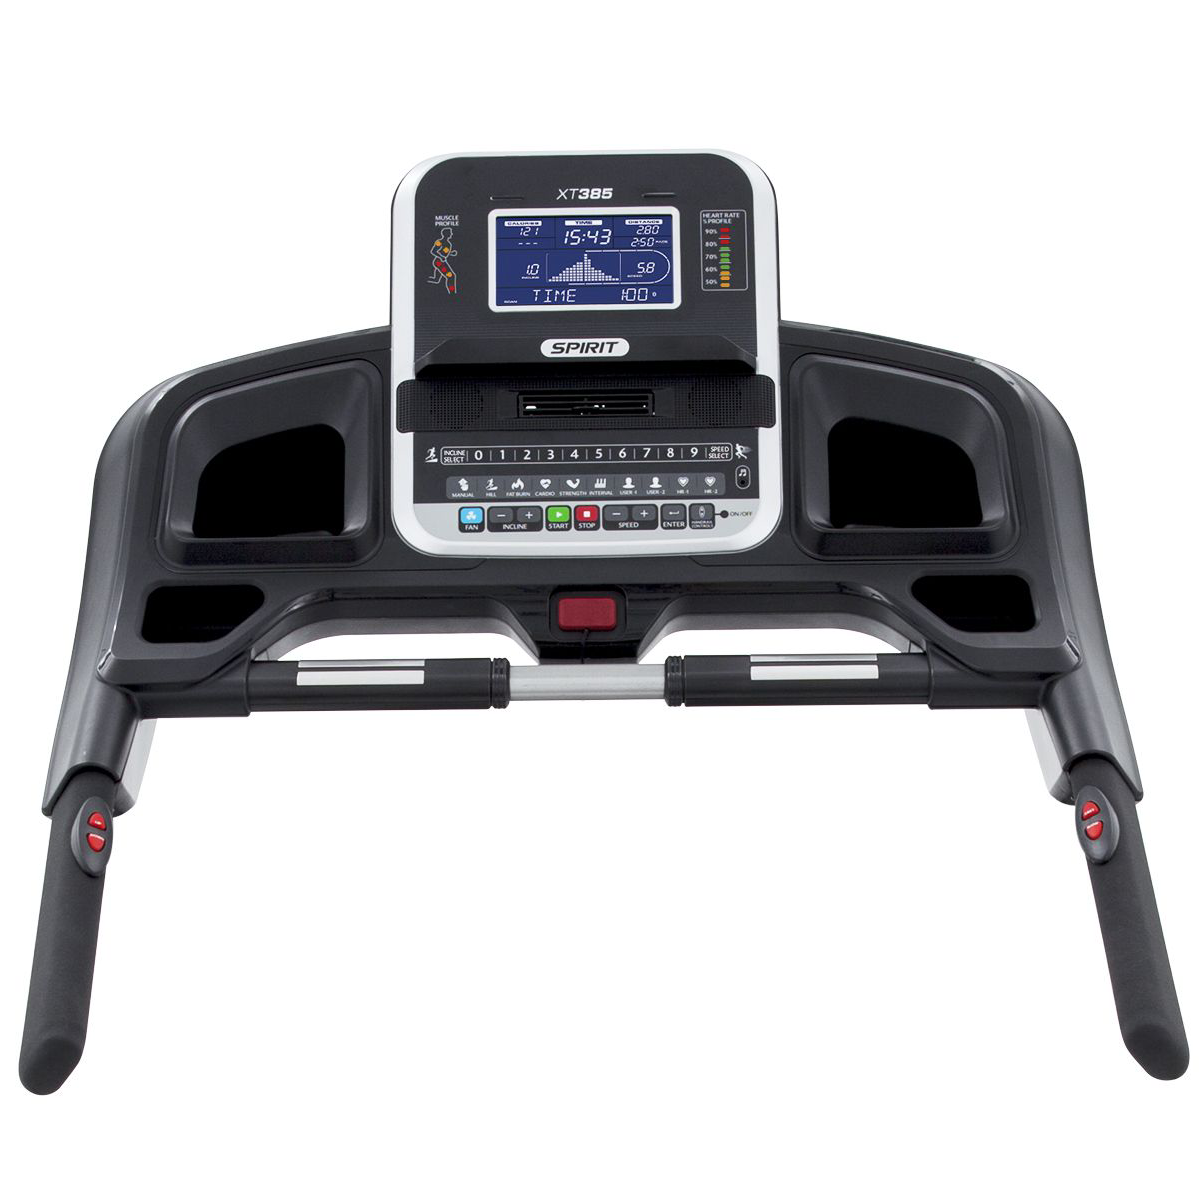 Spirit Fitness XT385 treadmill console showing monitor, cupholders, hand pulse grips, and handlebars